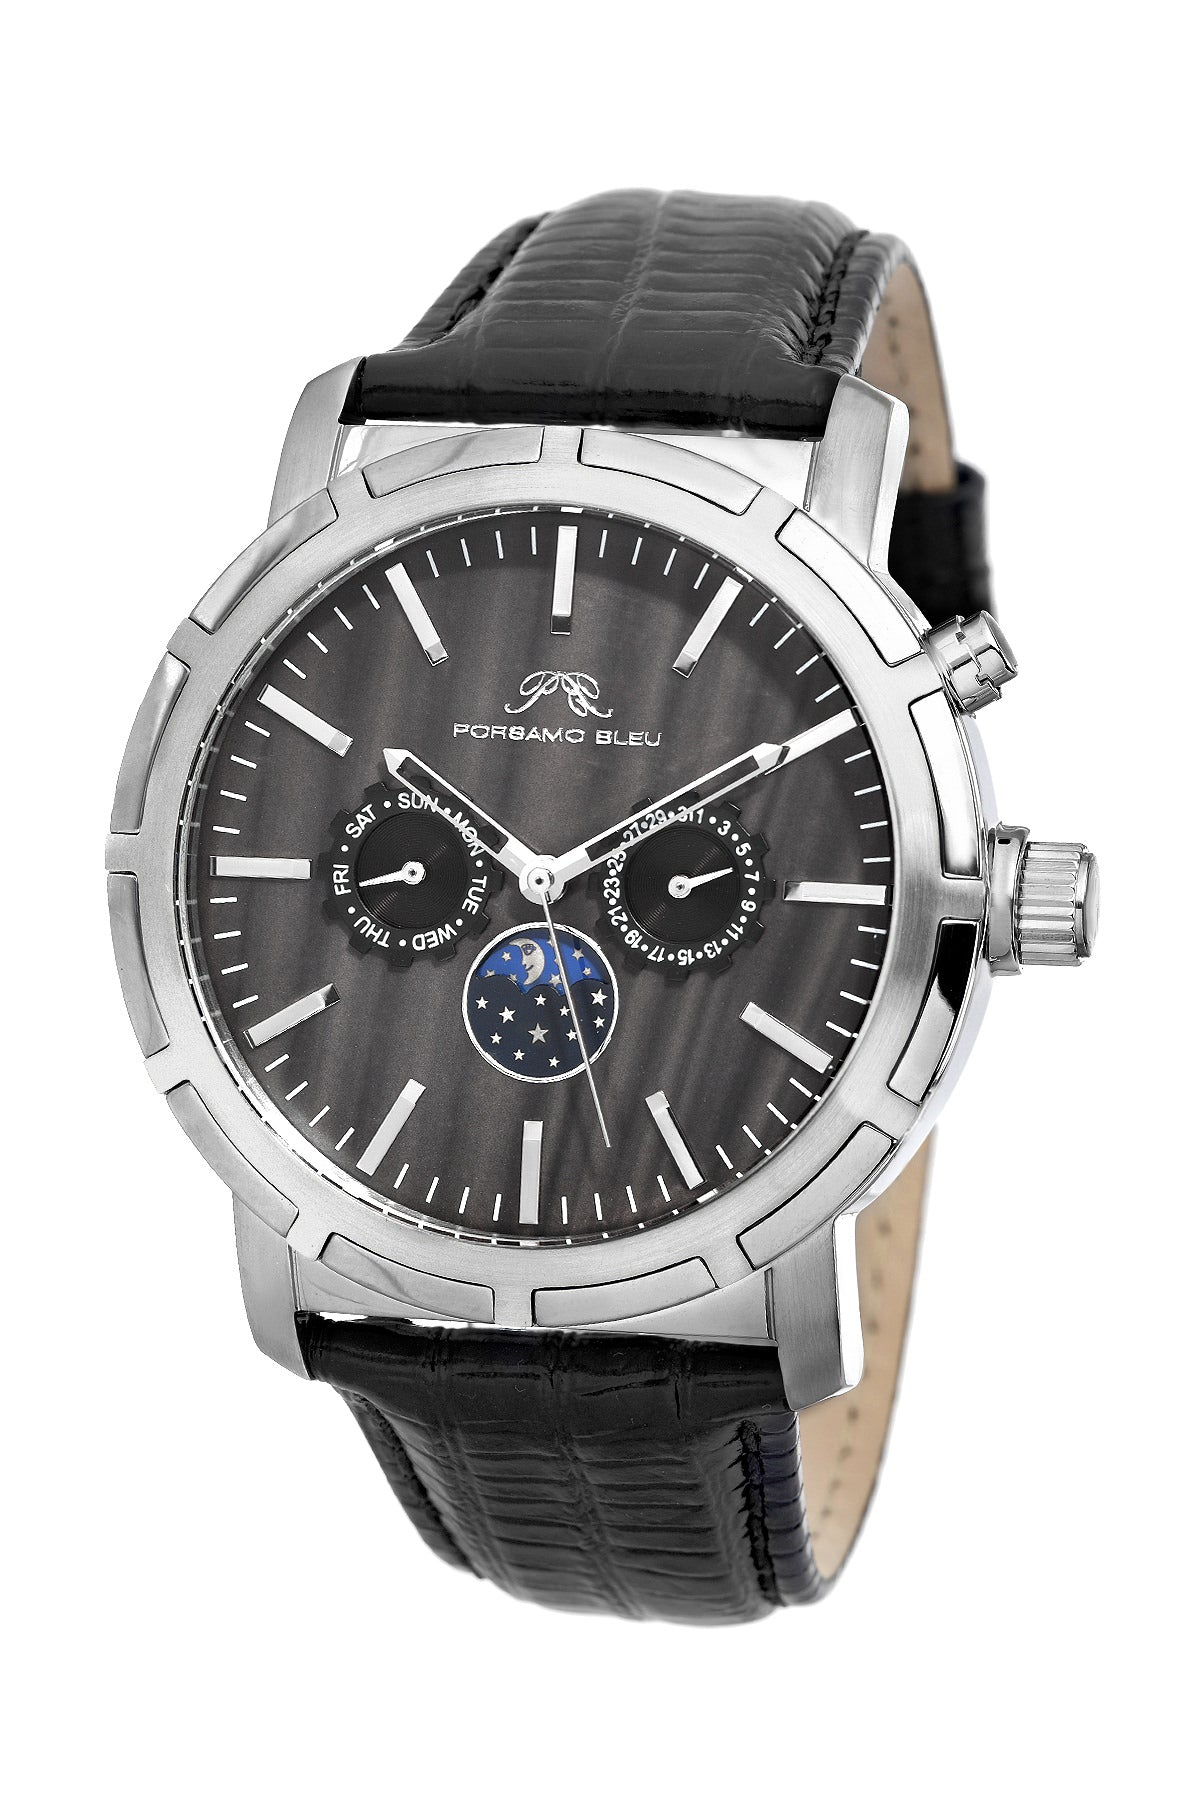 Porsamo Bleu NYC Moon luxury men's watch, genuine leather band, silver, black 057ANYL